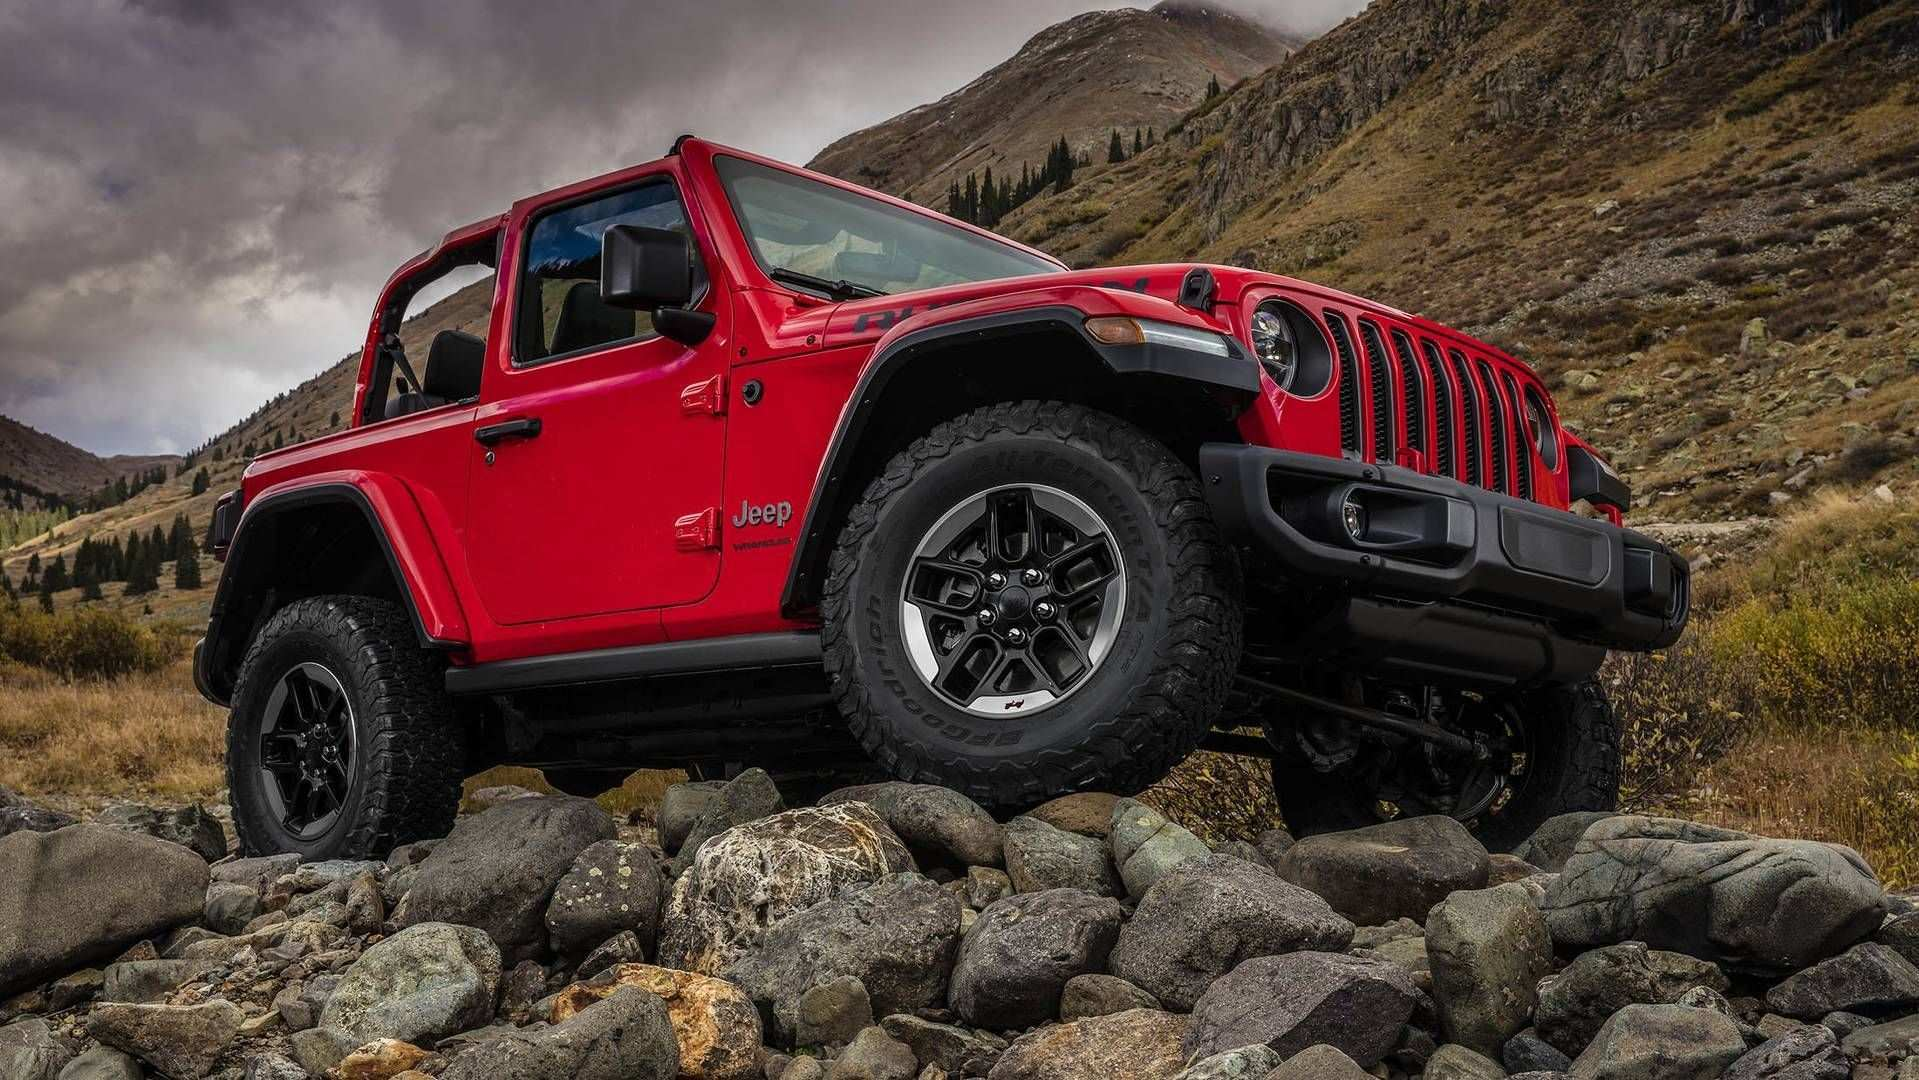 78 All New The Jeep Moab Edition 2019 Review And Release Date Ratings for The Jeep Moab Edition 2019 Review And Release Date